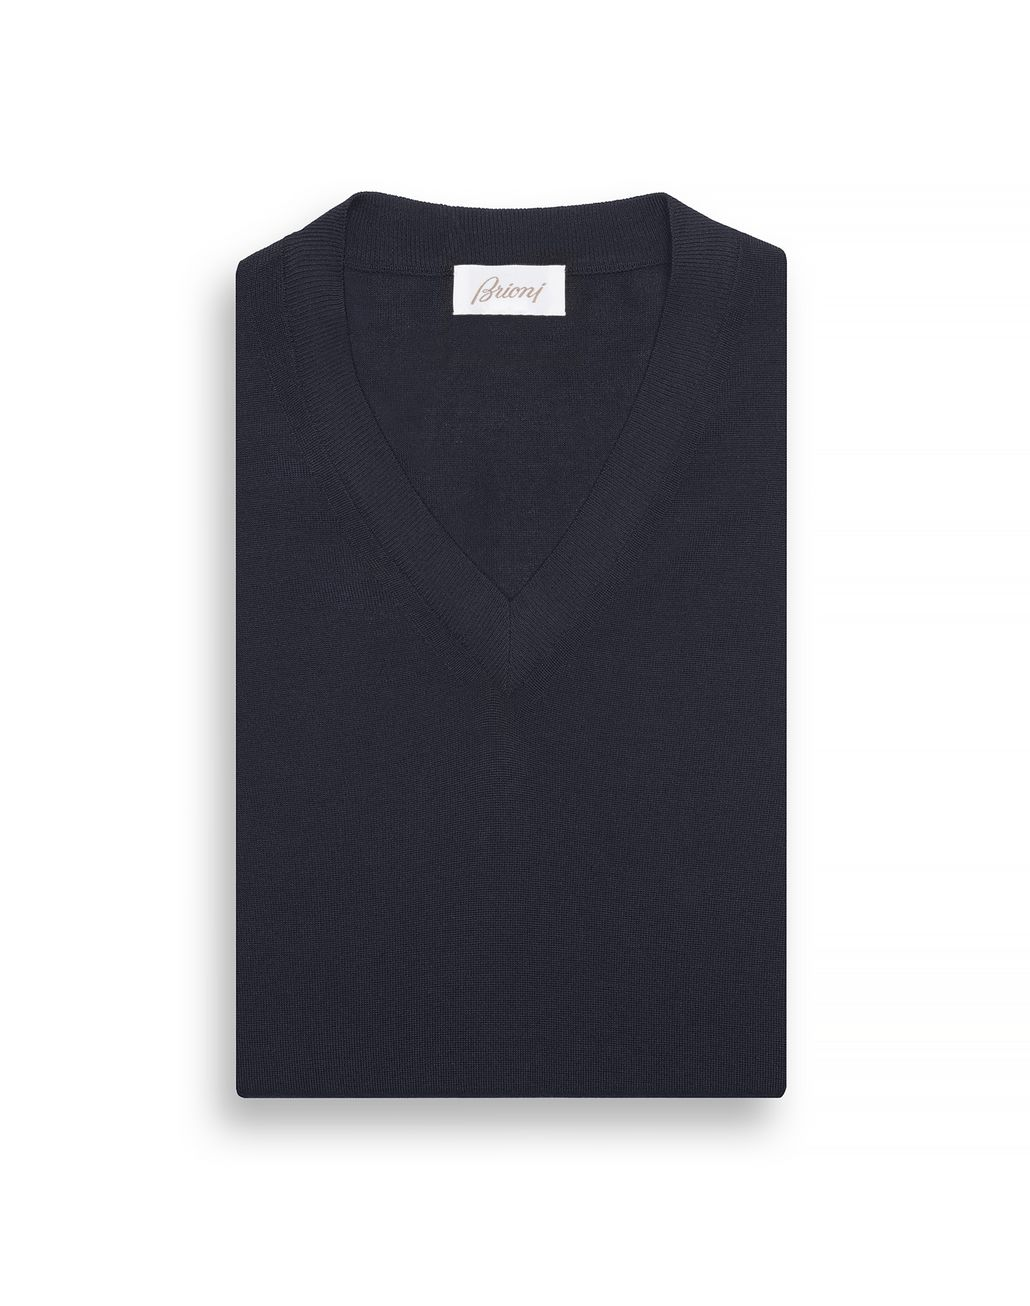 BRIONI 'Essential' Navy Blue V-Neck Sweater Knitwear Man e